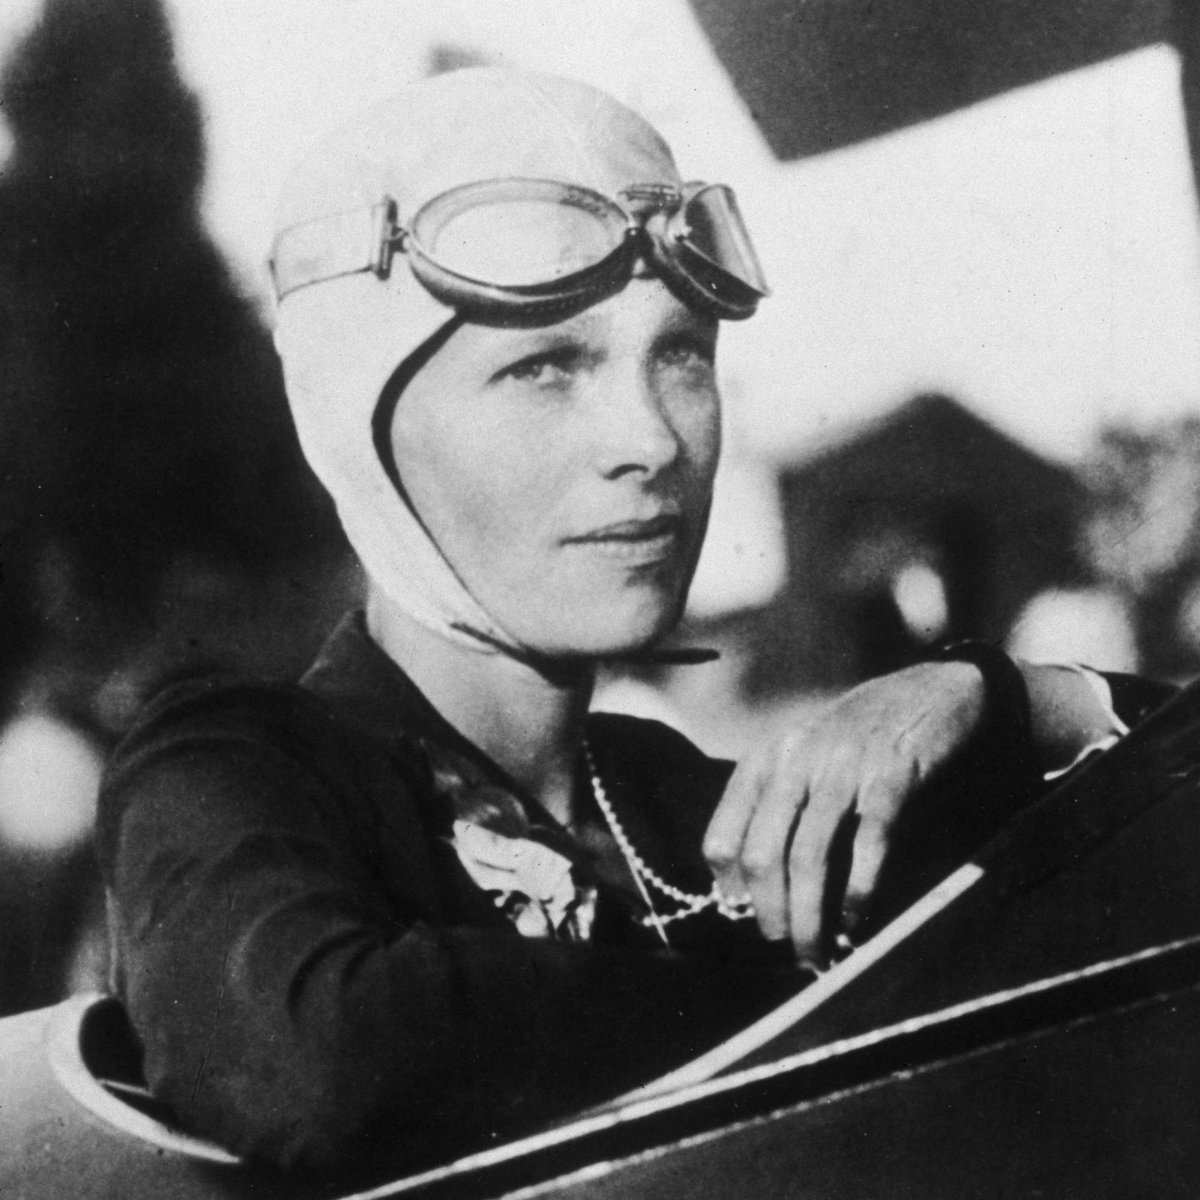 Happy Birthday to the legendary #AmeliaEarhart. She was the first woman to fly solo across the #AtlanticOcean and the first person to fly from #Hawaii to #California. Amelia was also the first woman to receive the U.S. military's Distinguished Flying Cross.  #ameliaearhartday